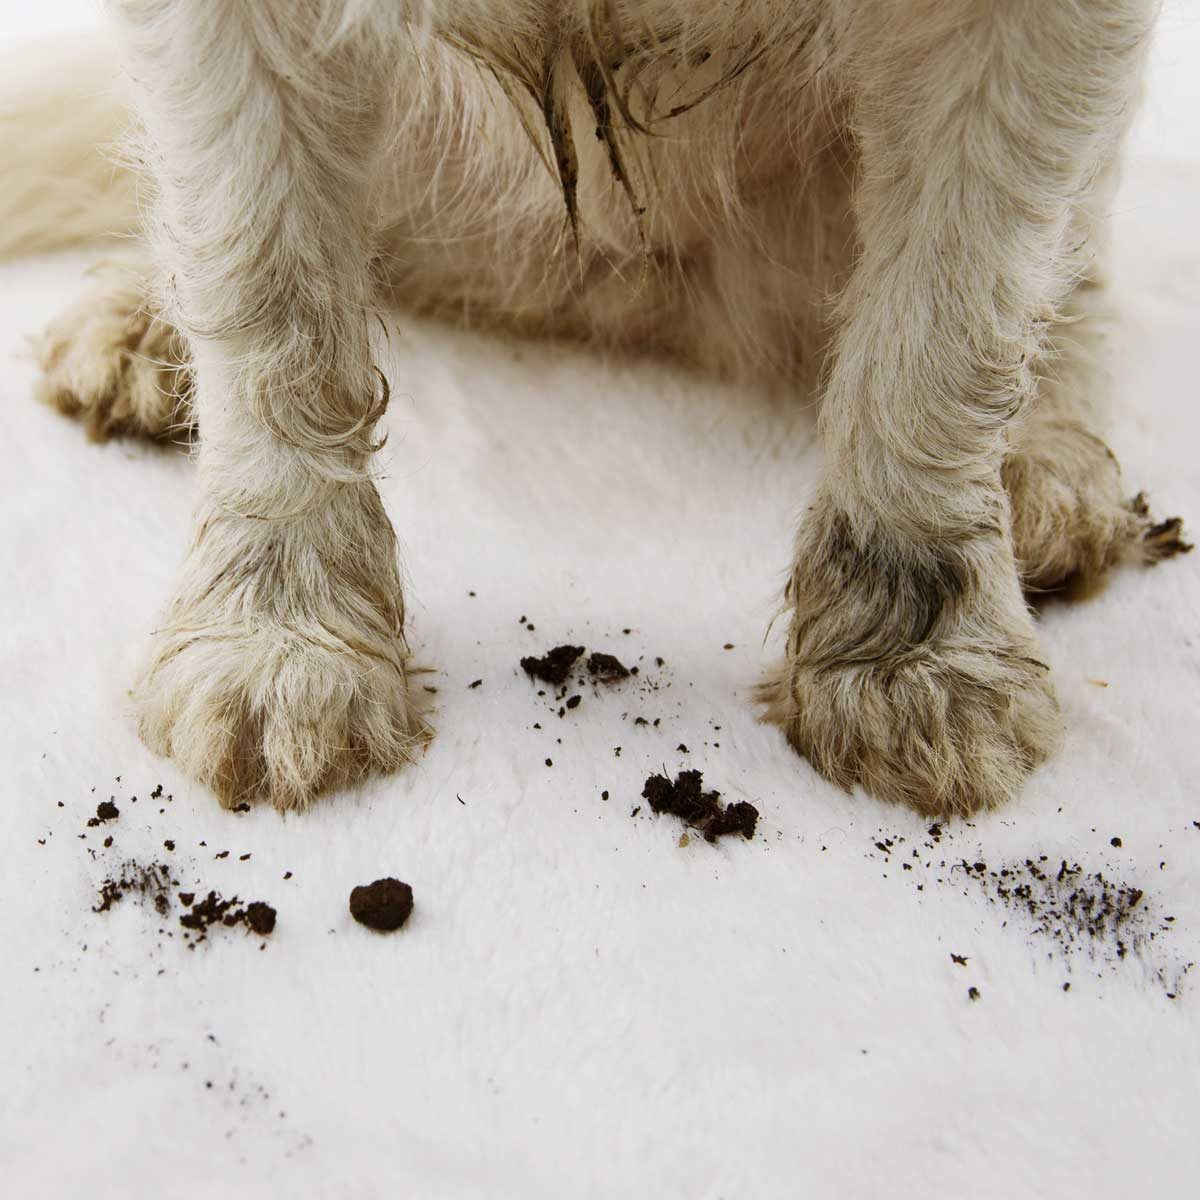 Dirty Paws Gettyimages 1146516653